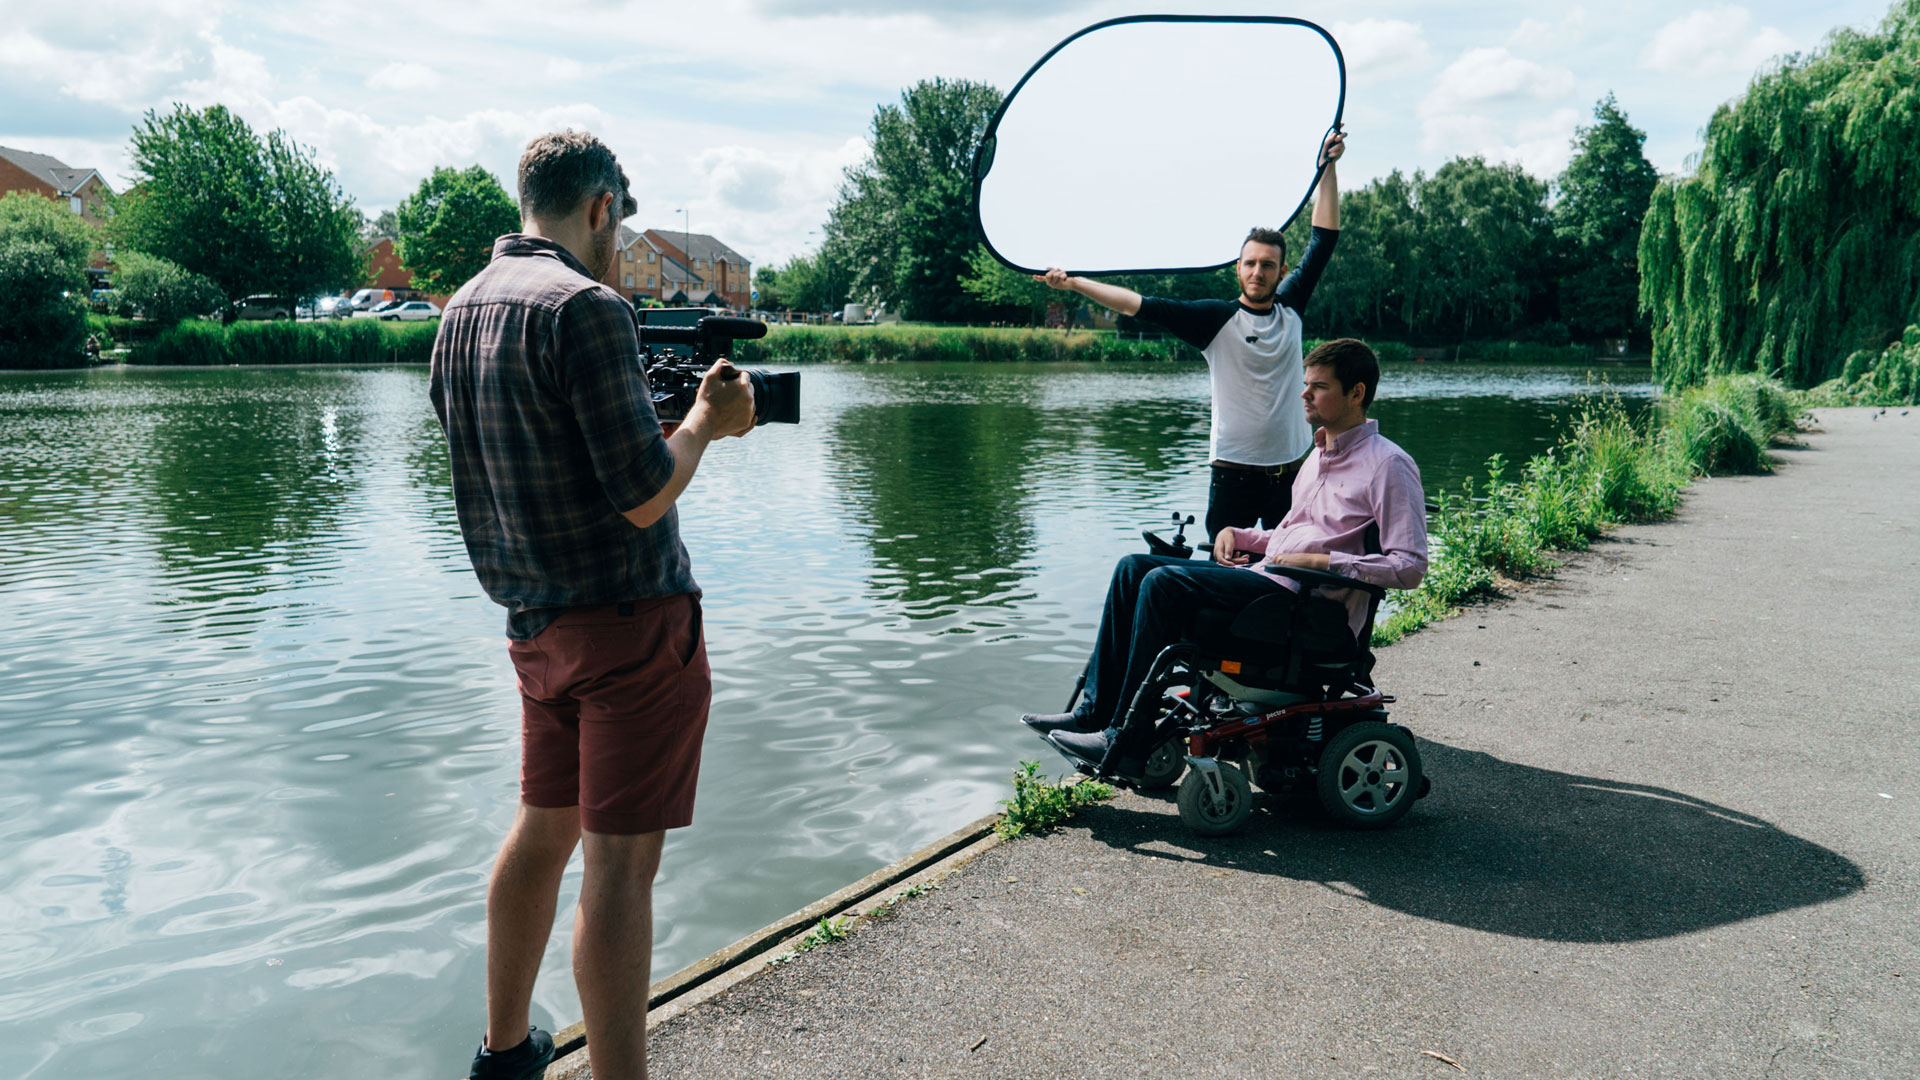 Small film crew, shooting with Michael (a wheelchair user) by a lake.